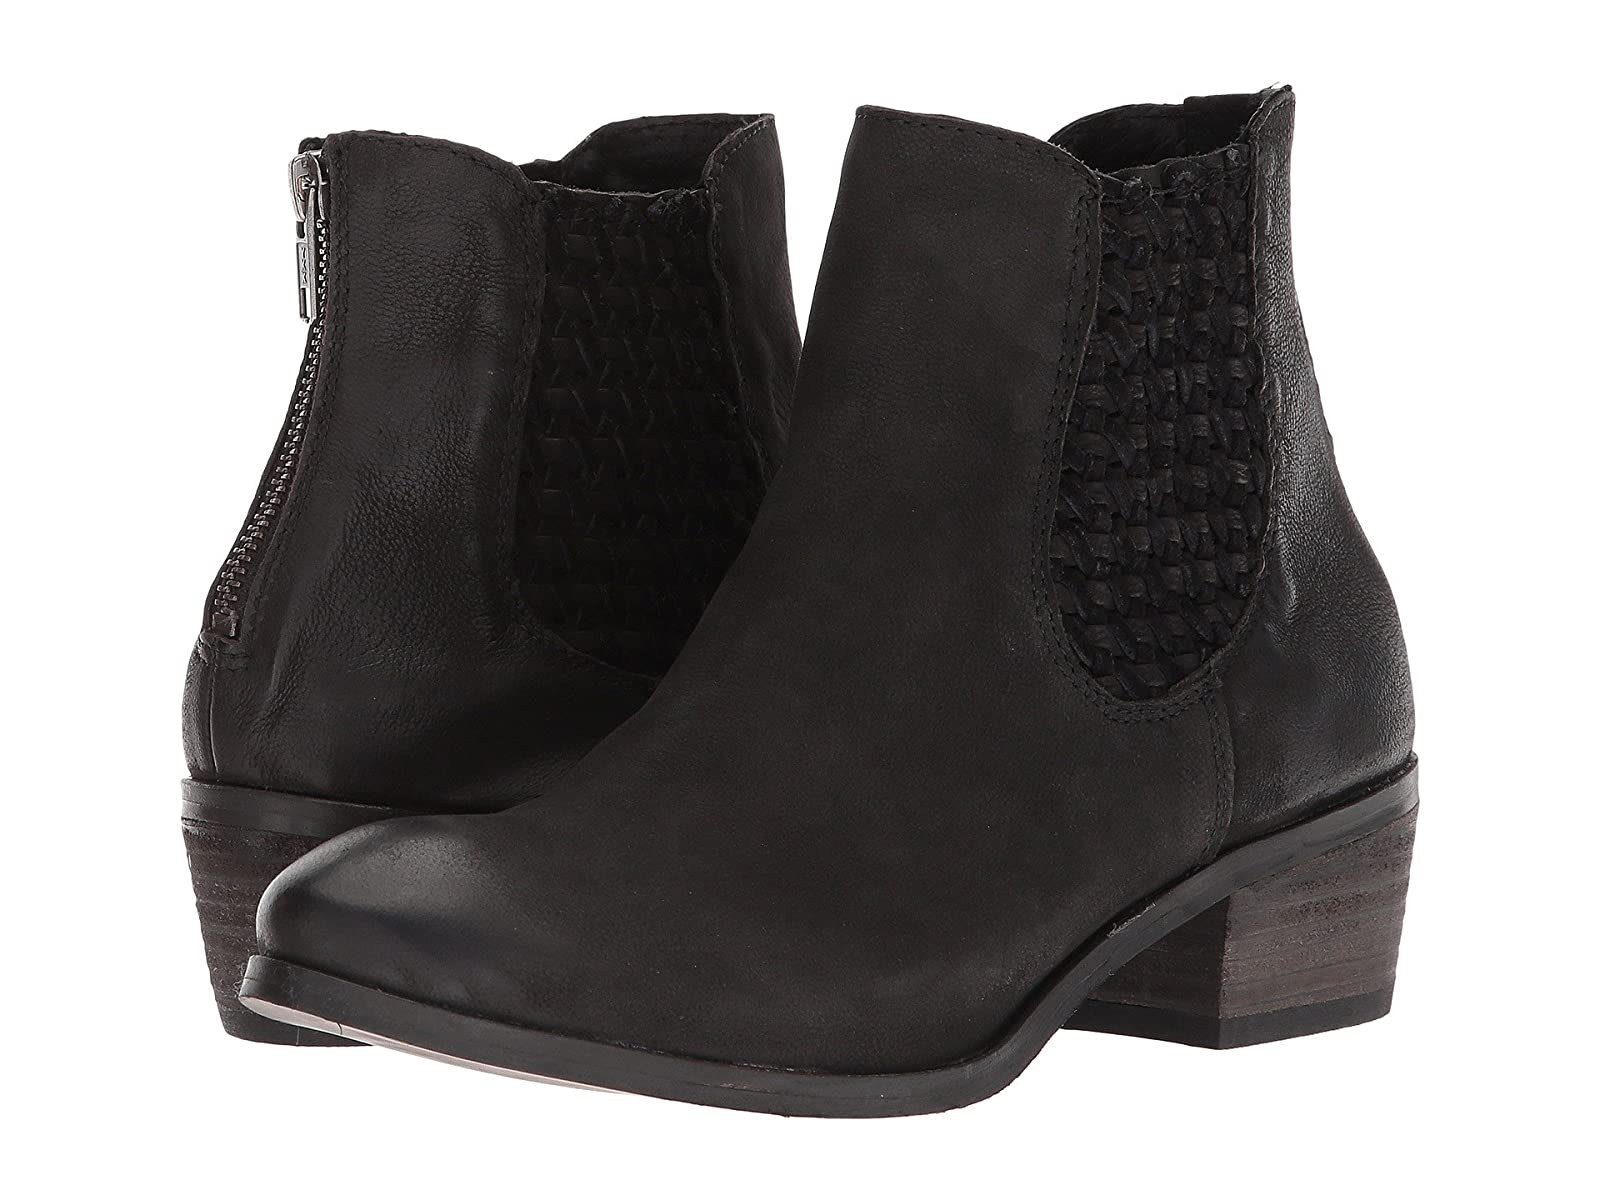 Sbicca HaremCheap and distinctive eye-catching shoes